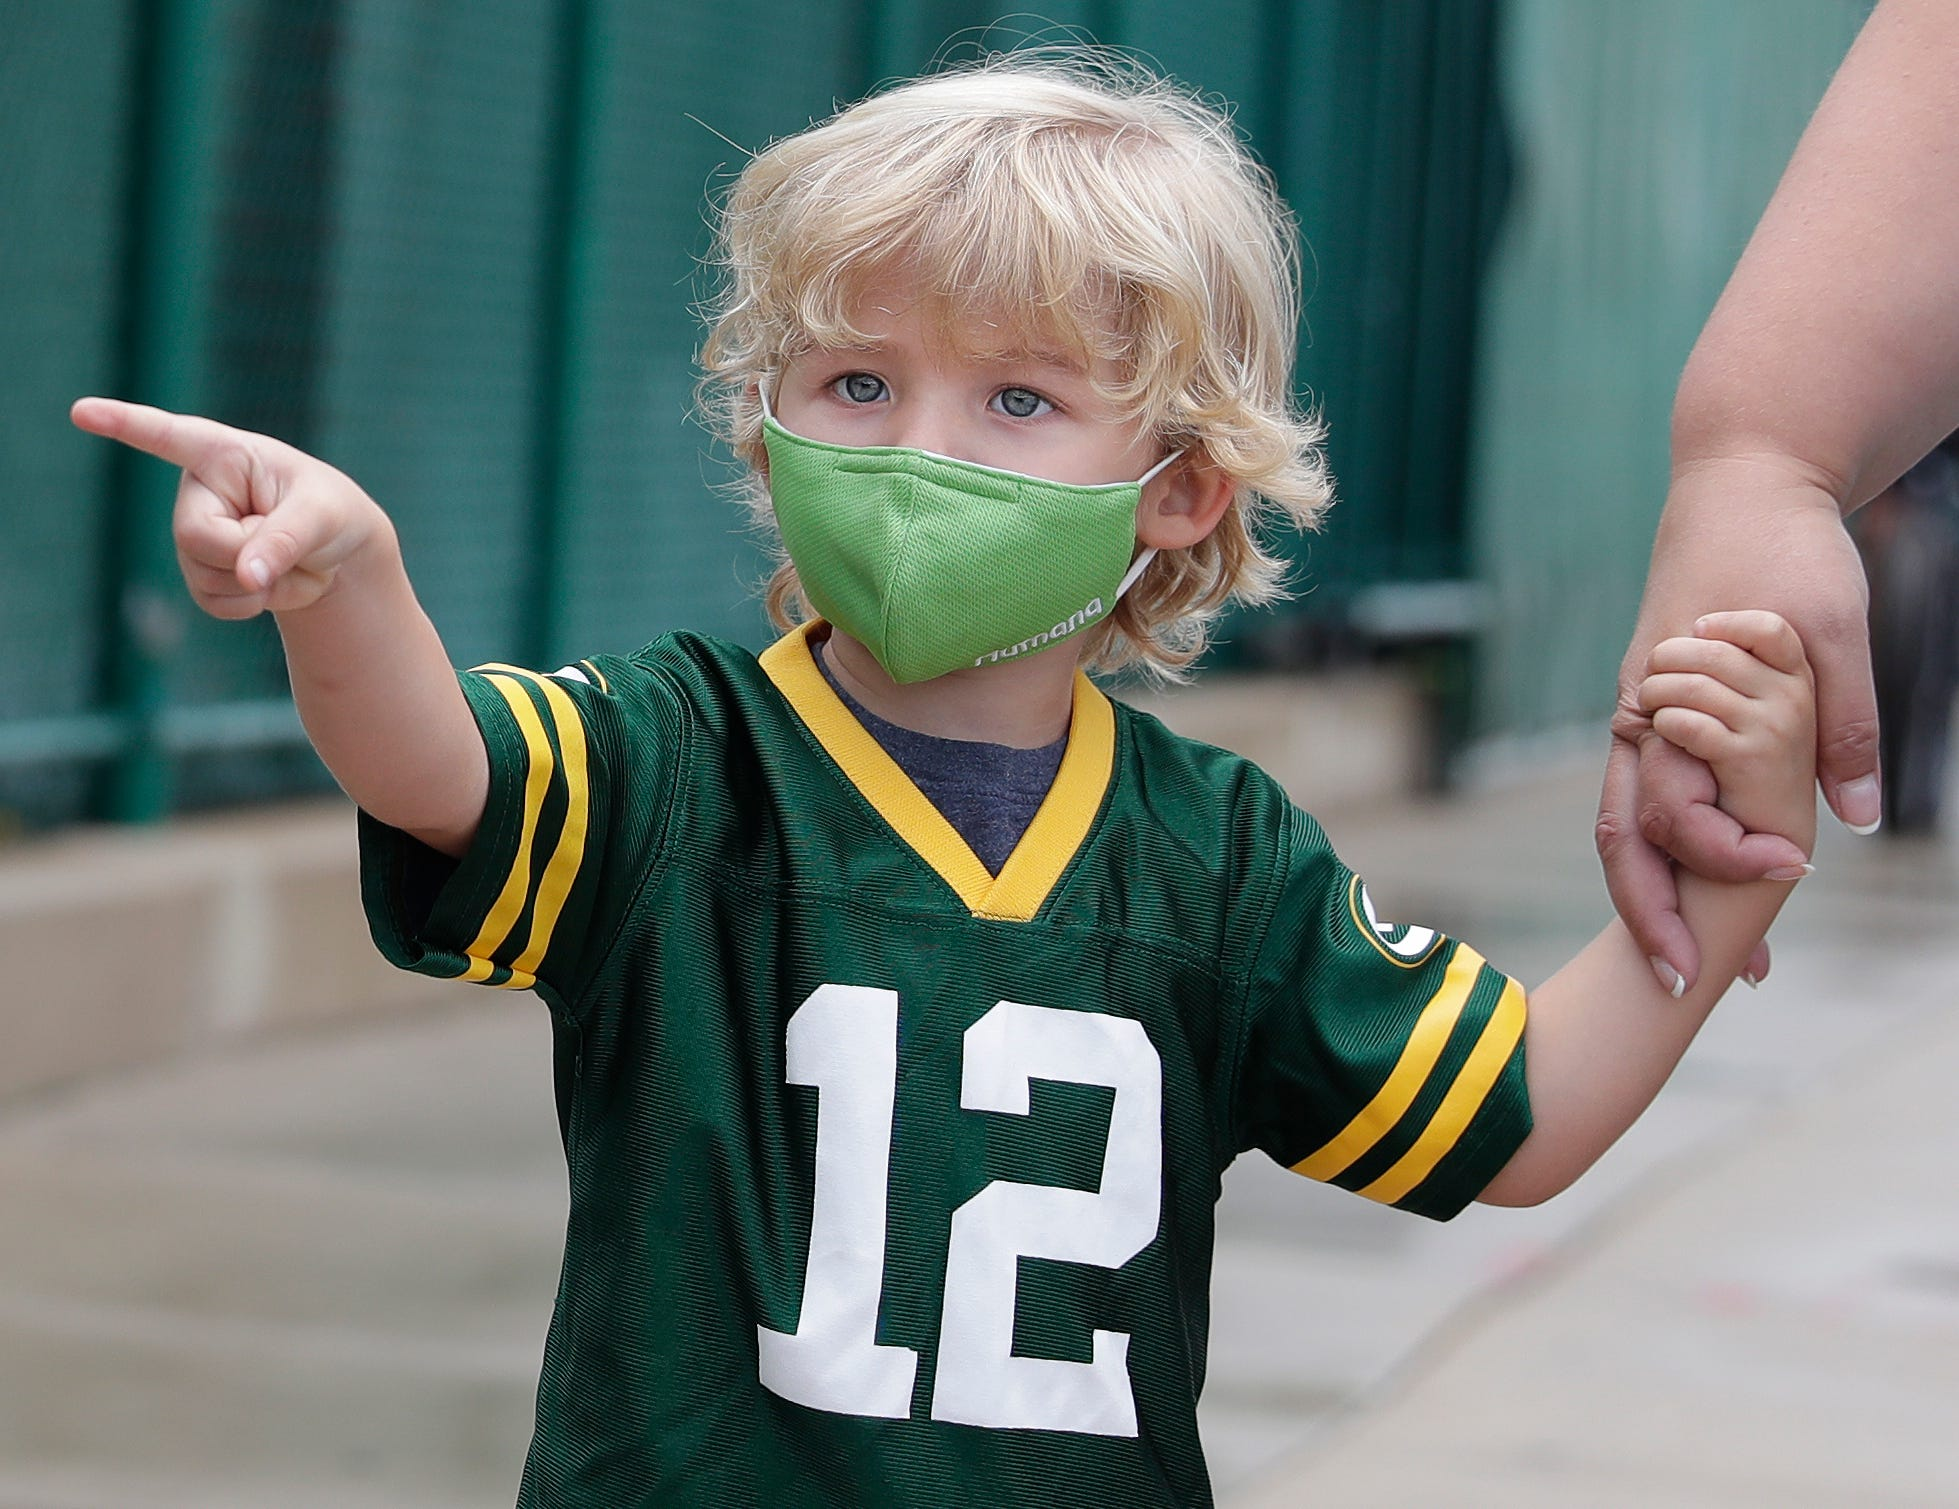 Keegan DeMuth, 3, of Appleton points to Green Bay Packers players at they walk to practice on Aug. 15, 2020, in Ashwaubenon, Wis. The team began its first practice of training camp at Ray Nitschke Field, but with no public viewing due to the coronavirus pandemic, only a few fans visited the area.